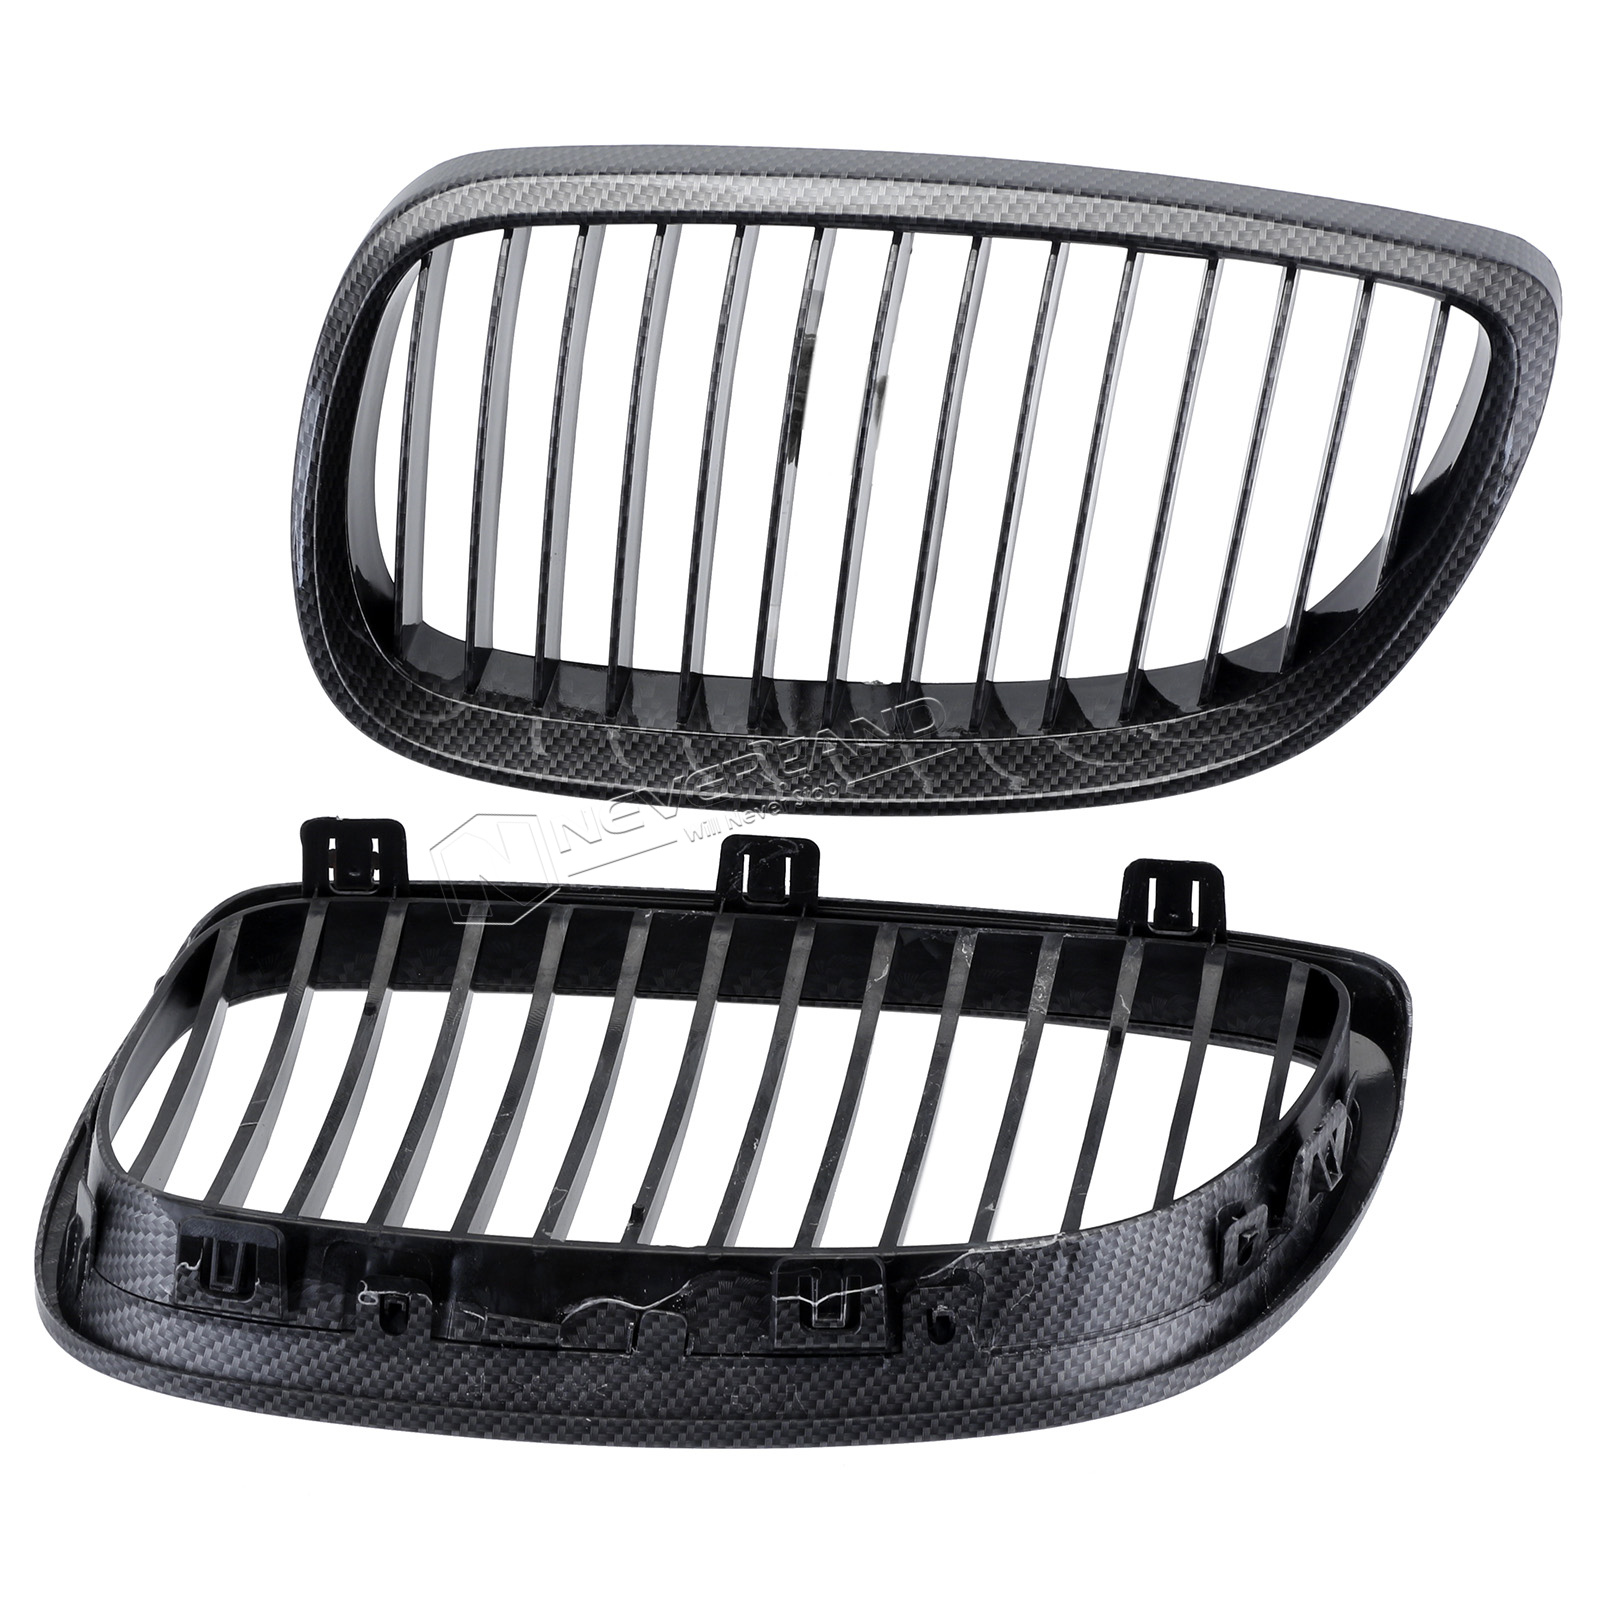 2pcs Carbon Fiber Black Car Grille Grid Front Bumper For